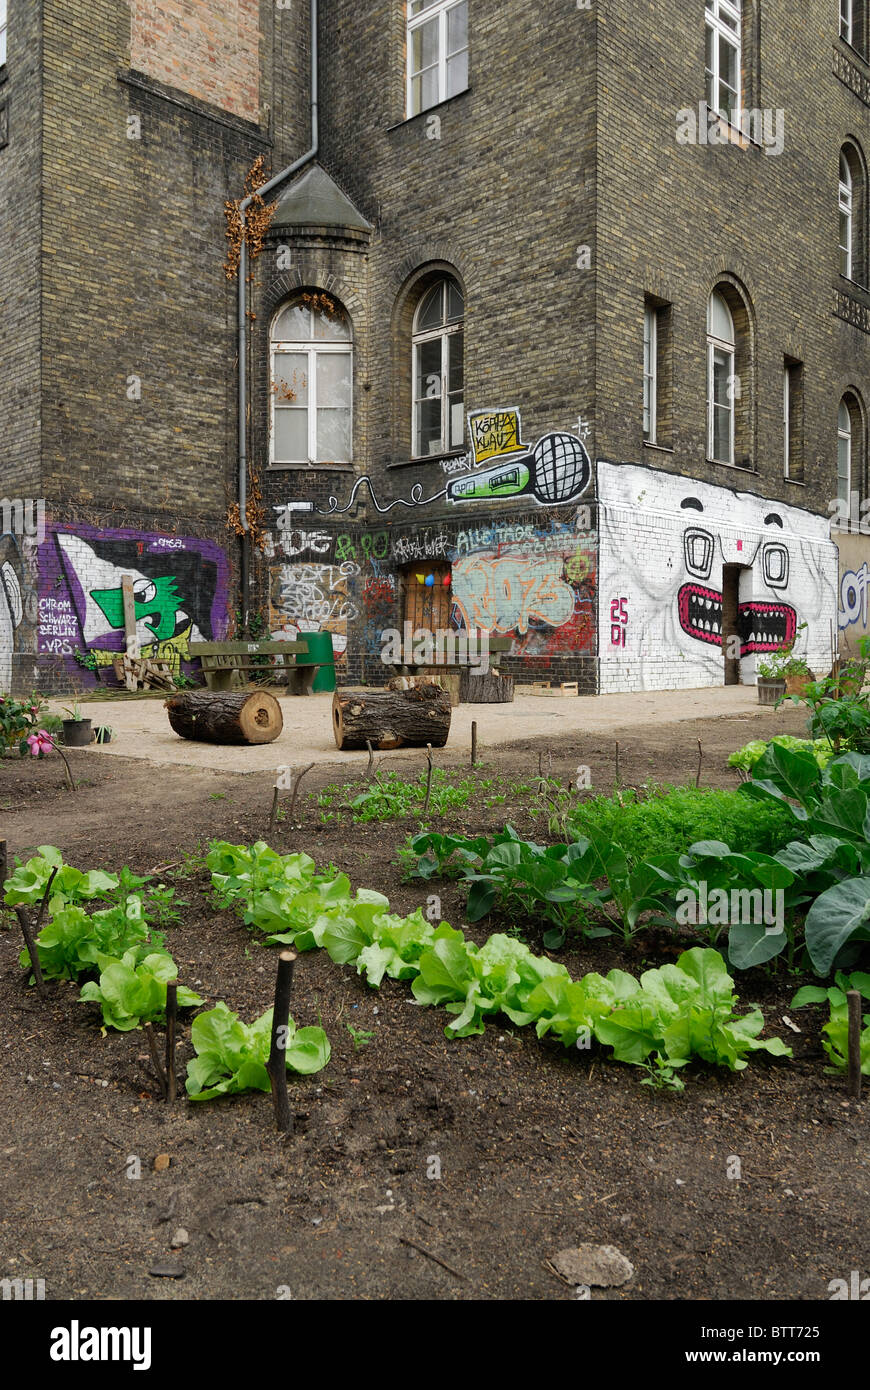 berlin germany urban gardening in stock photos berlin germany urban gardening in stock images. Black Bedroom Furniture Sets. Home Design Ideas